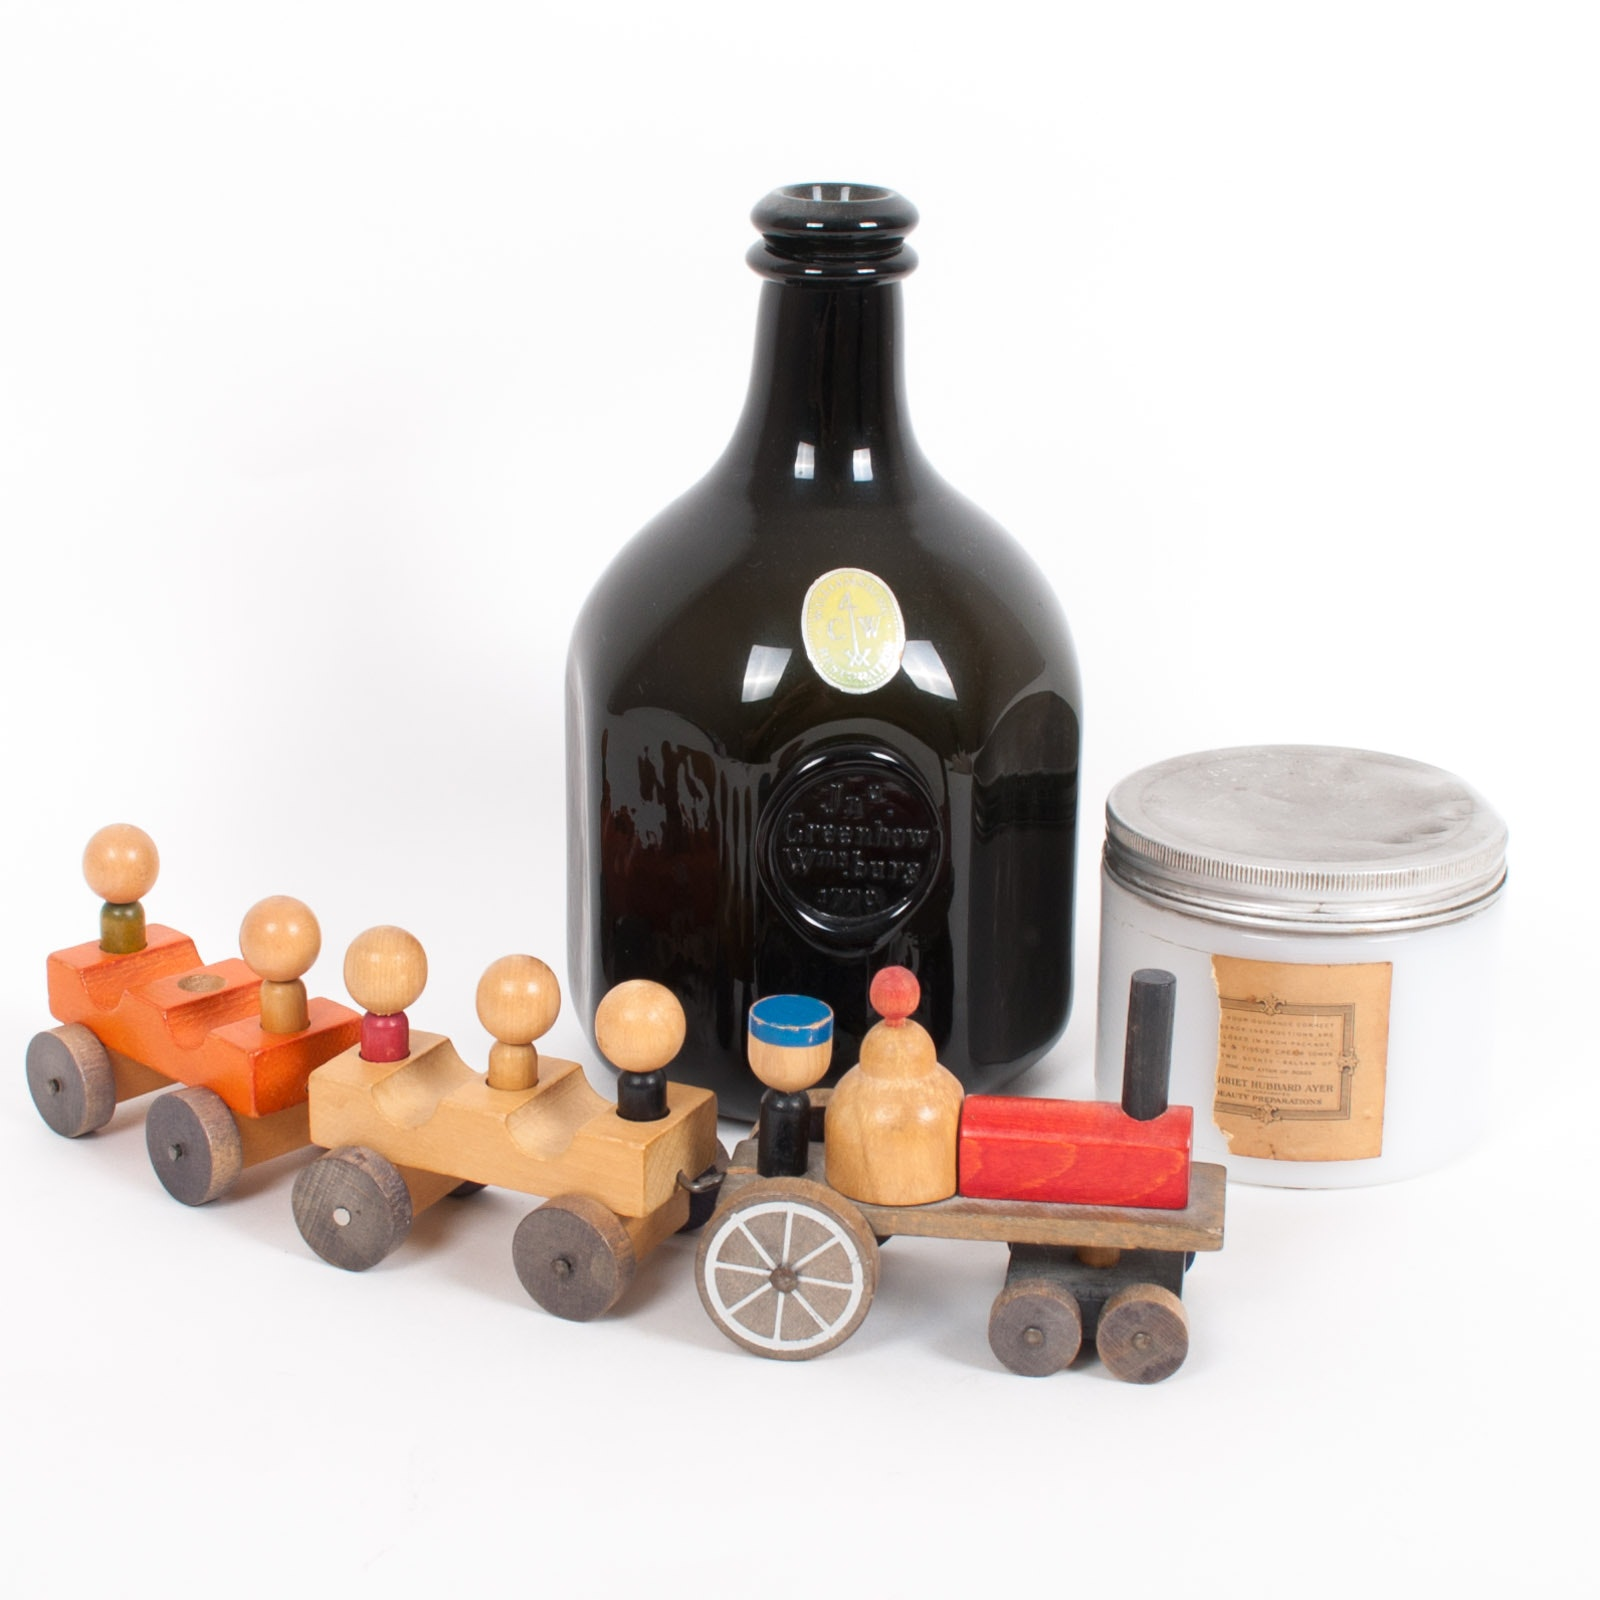 Williamsburg Bottle Harriet Hubbard Ayer Jar and Folk Art Wood Train